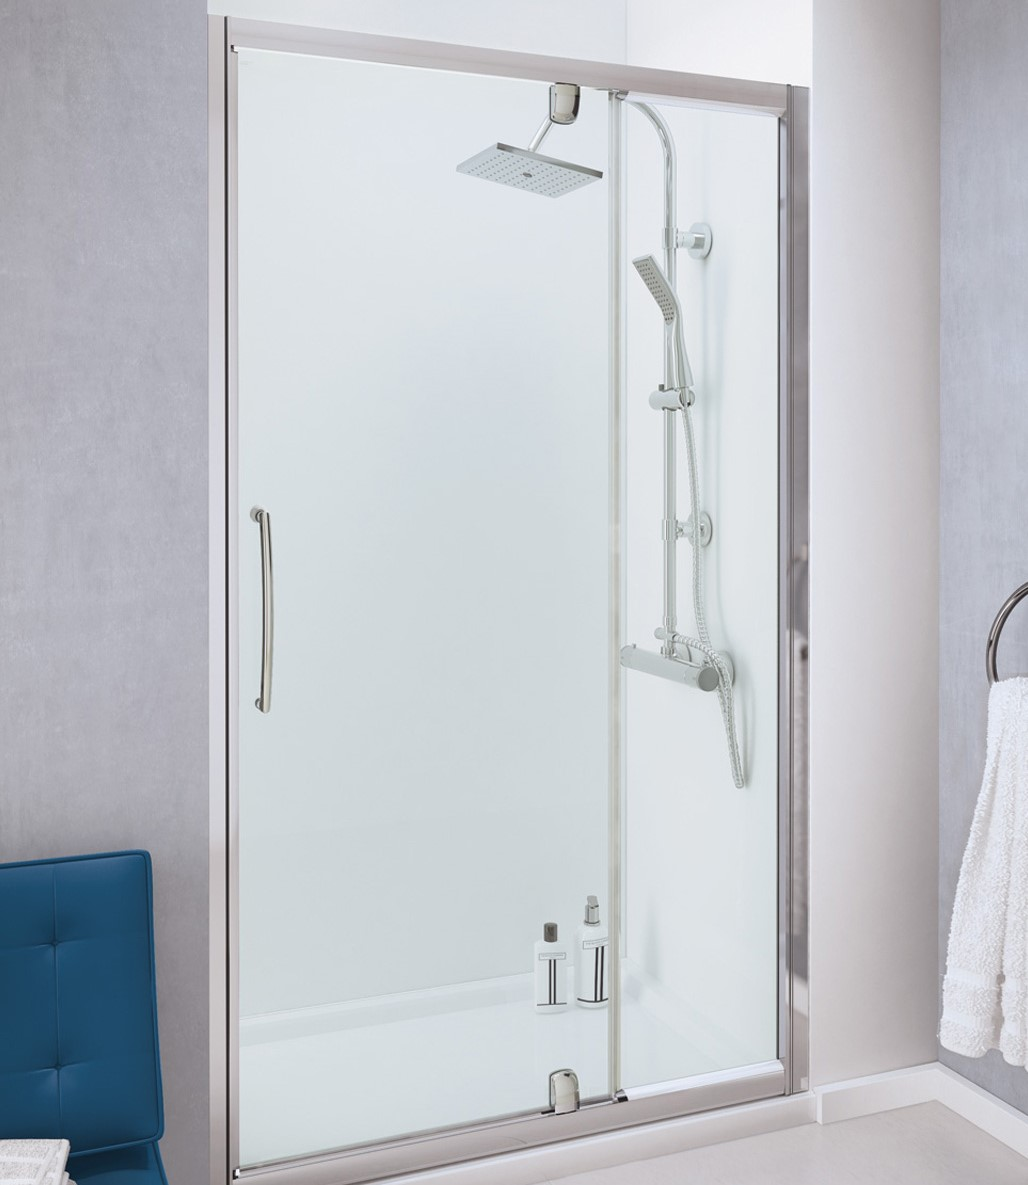 Lakes Bathrooms Launches Pivot Door With Integrated In Line Panel